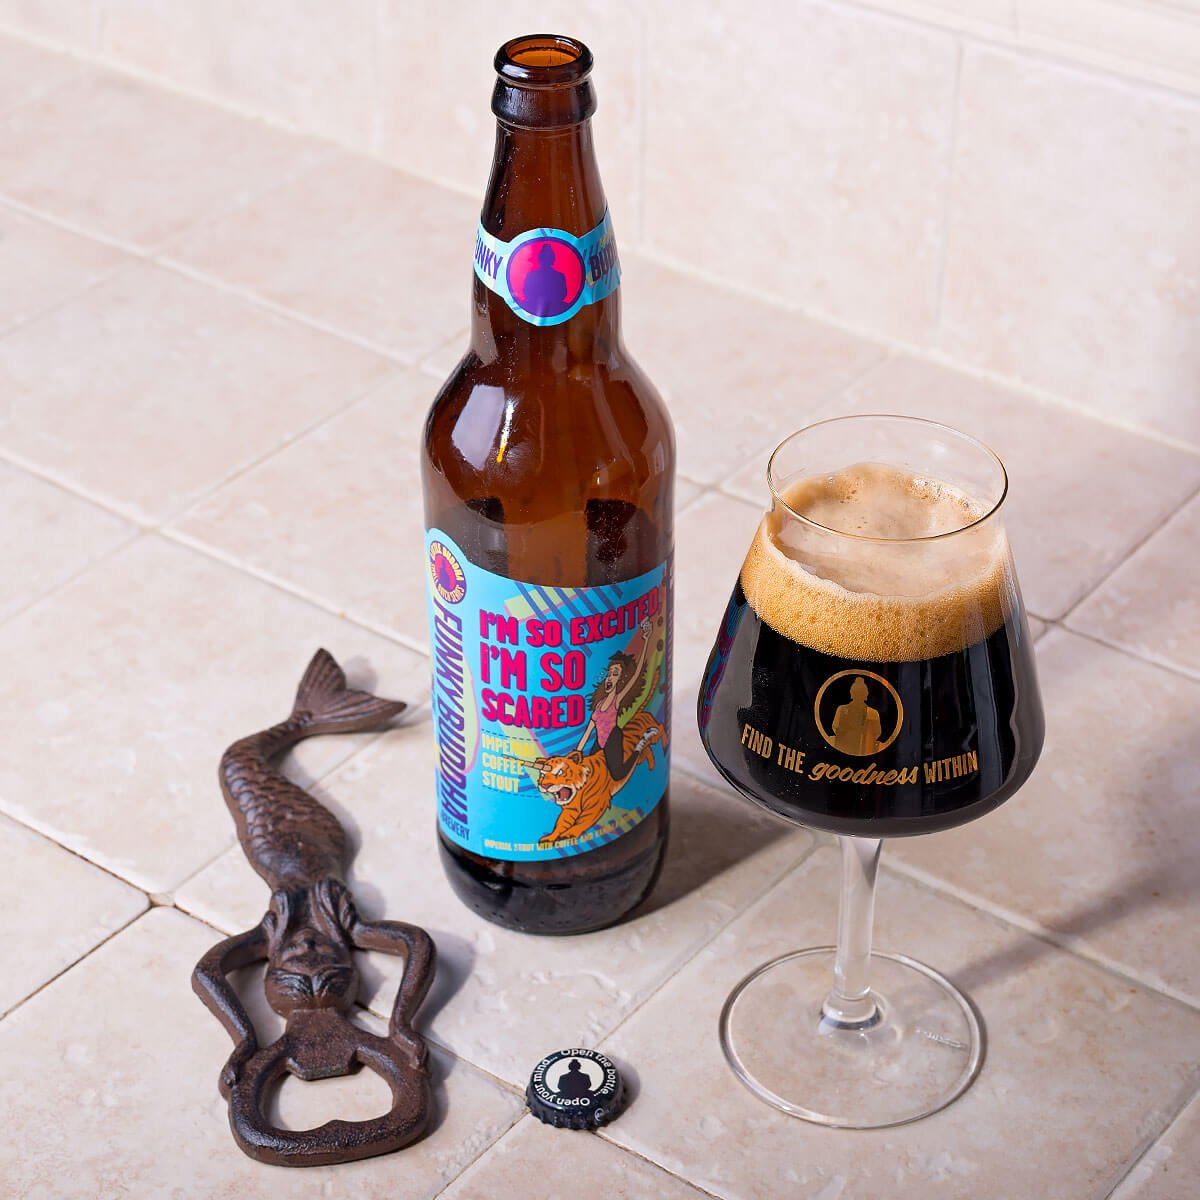 I'm So Excited, I'm So Scared, an American Imperial Stout by Funky Buddha Brewery